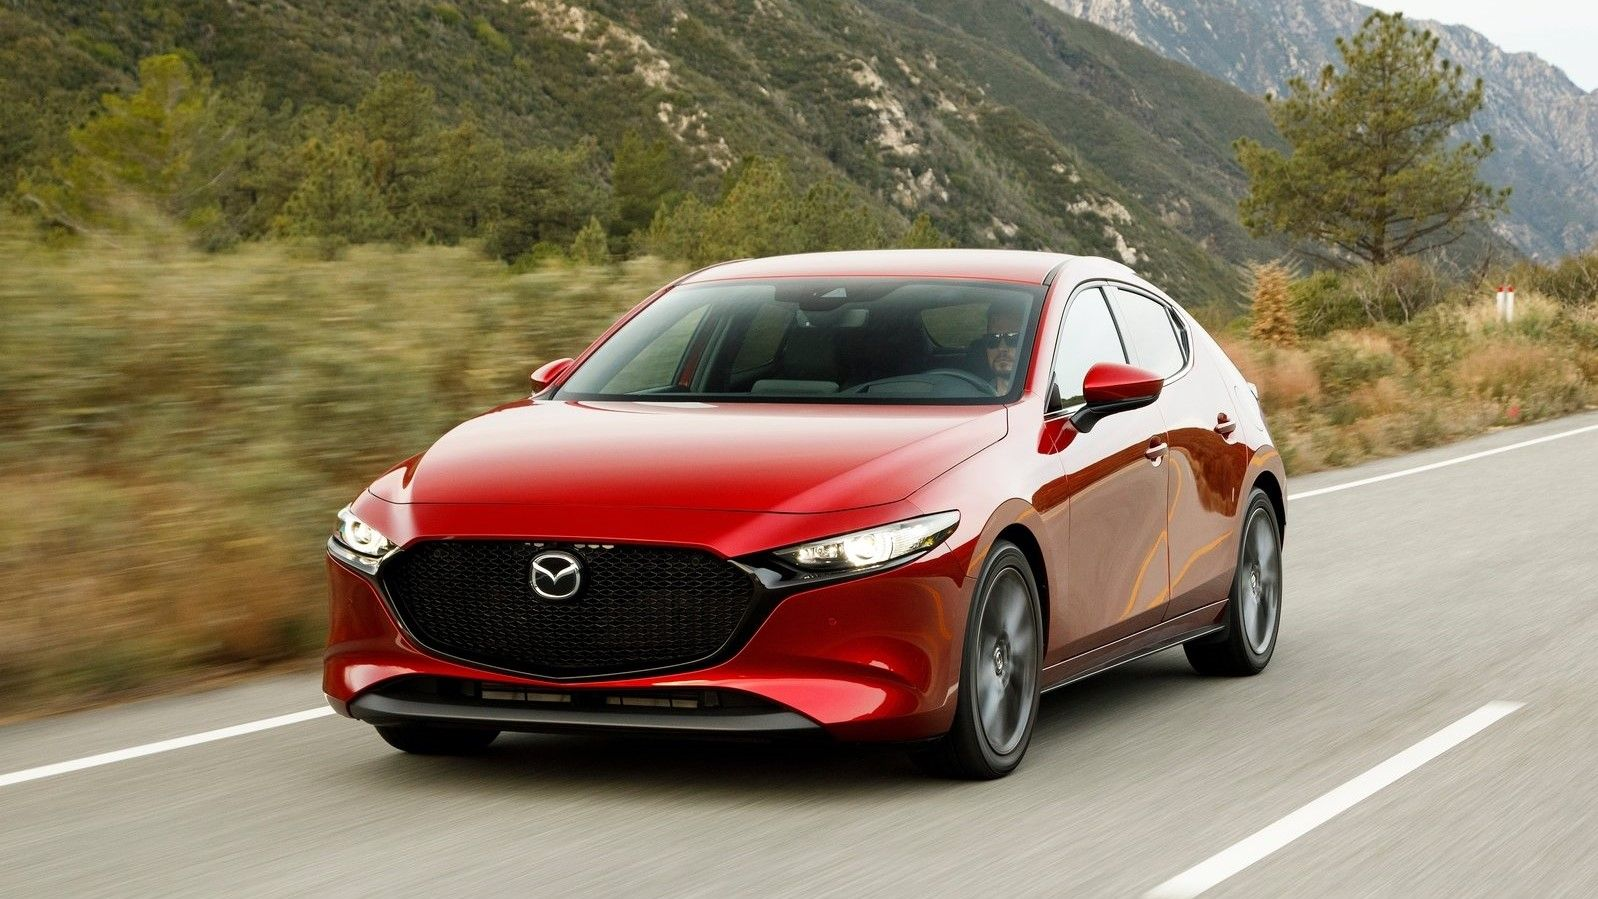 2021 Mazda 3 Hatchback Review: Trims, Features, Prices ...